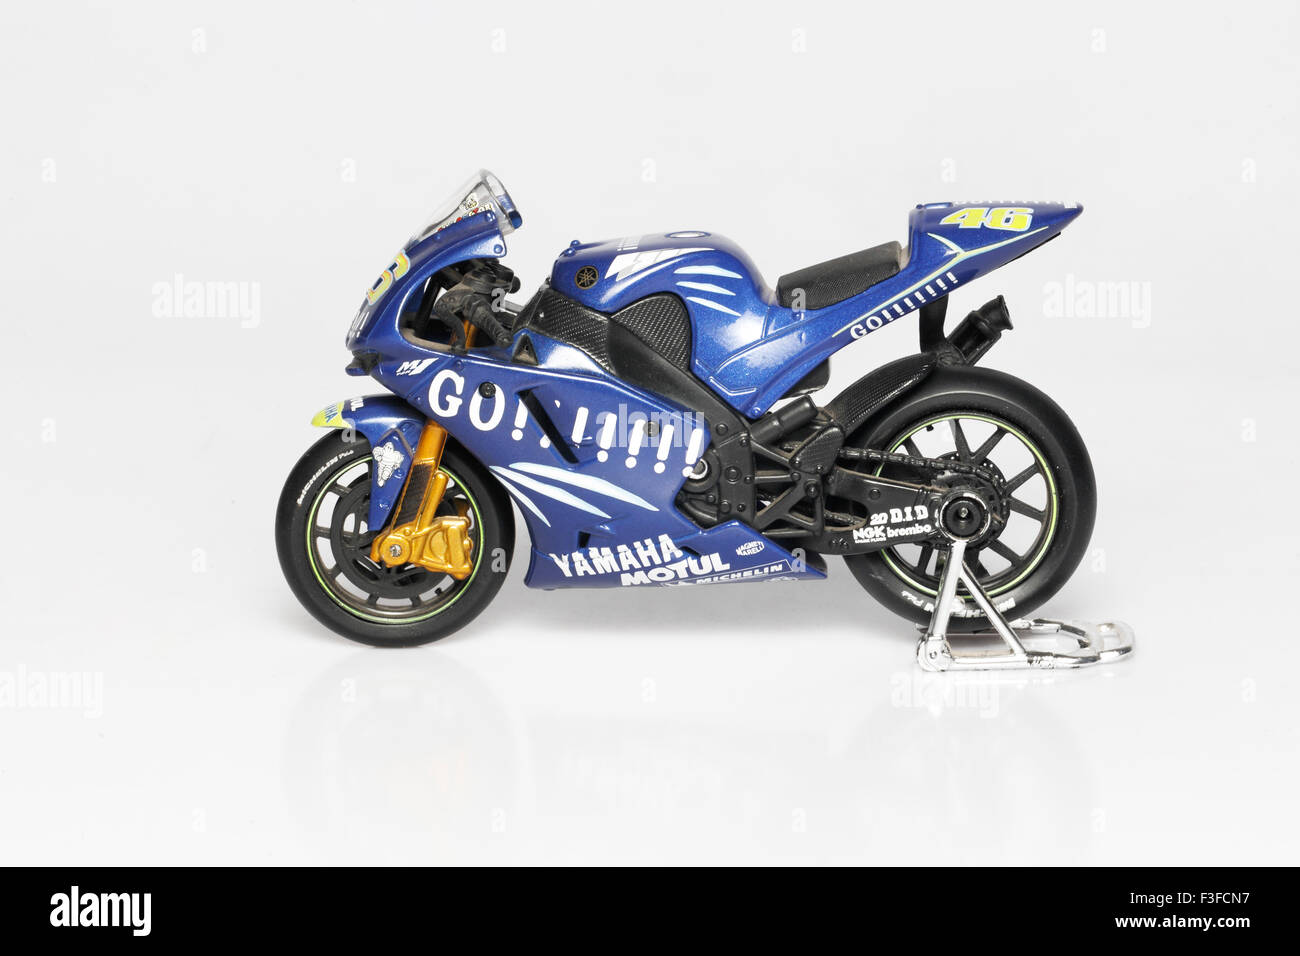 Motorcycle Toy Stock Photos & Motorcycle Toy Stock Images - Alamy